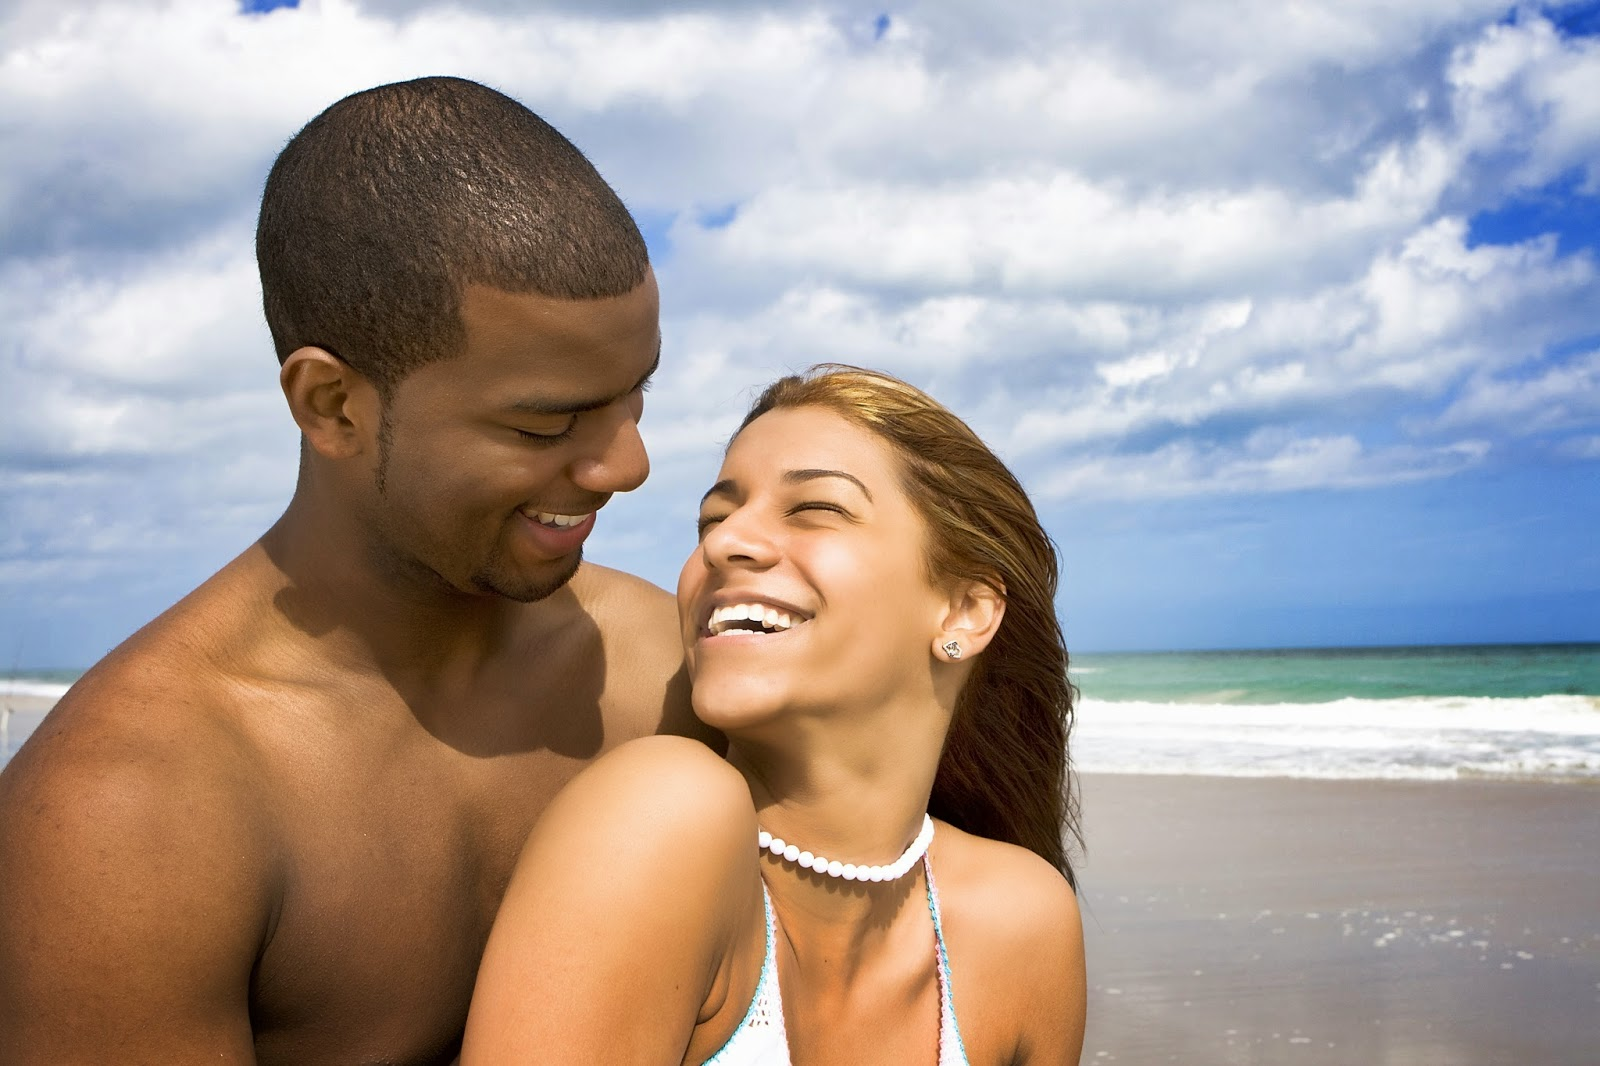 otsego black dating site International - black dating blackcupid is part of the well-established cupid media network that operates over 30 reputable niche dating sites with a commitment to connecting black singles worldwide, we bring to you a safe and easy platform designed to help you meet your love match.